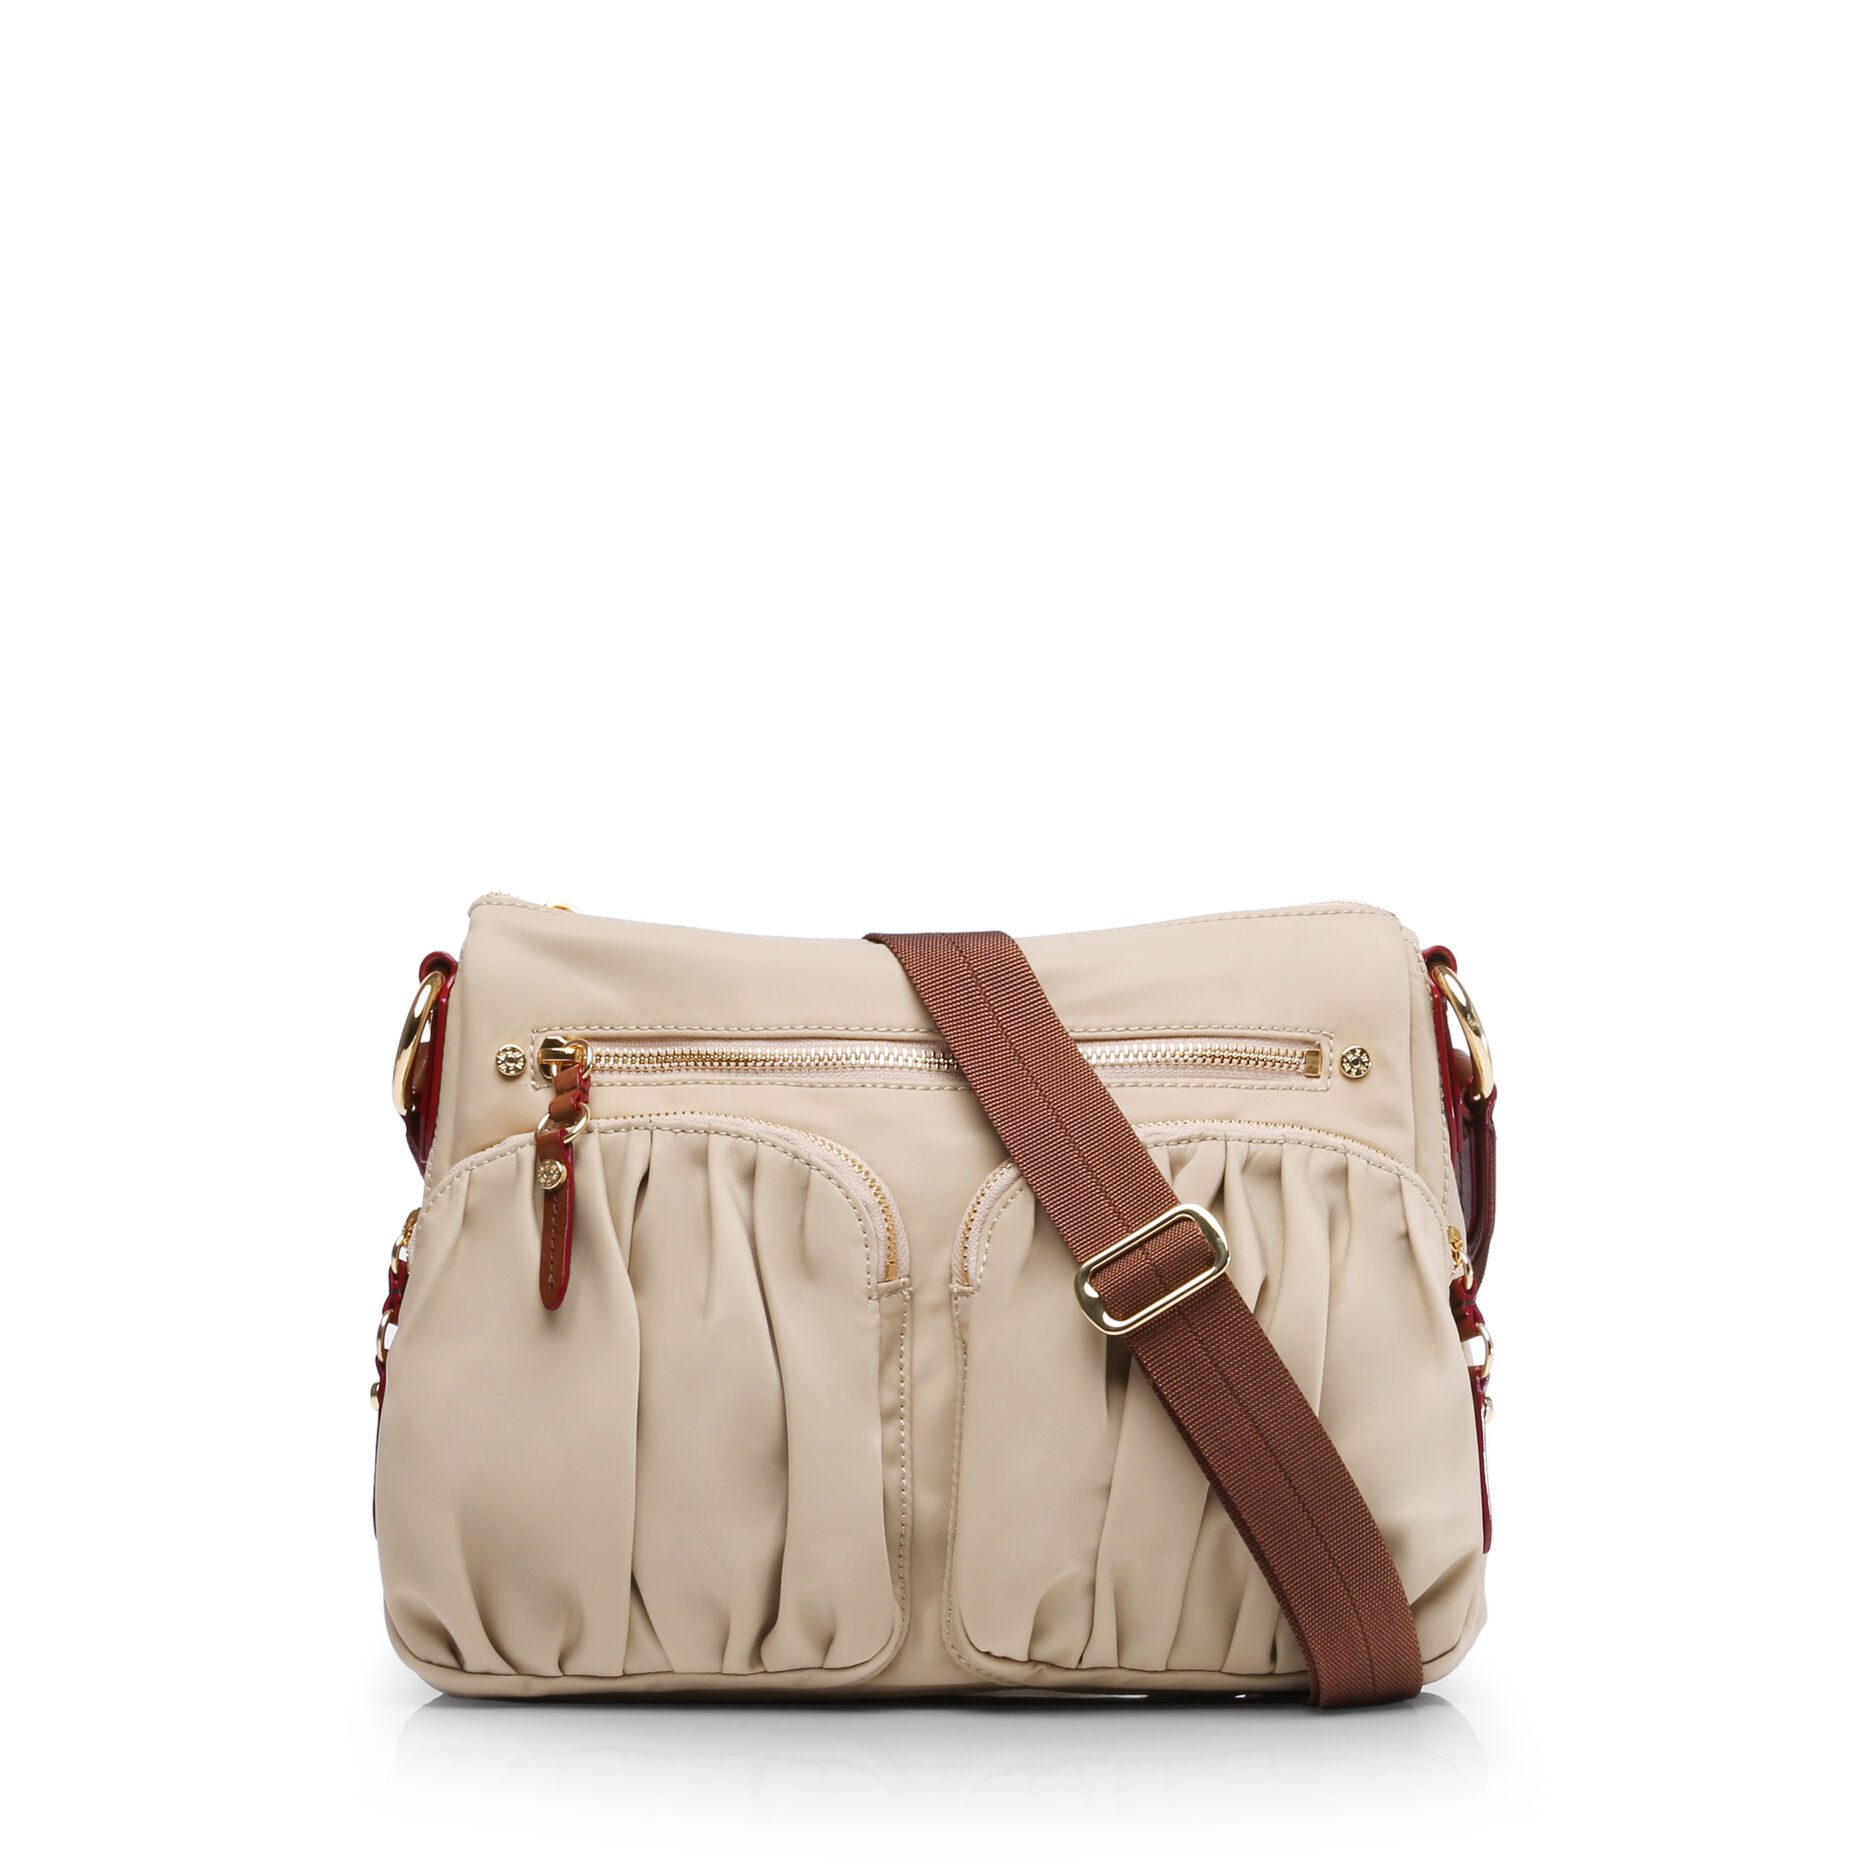 Flax/Brown Bedford Paige (10121379)